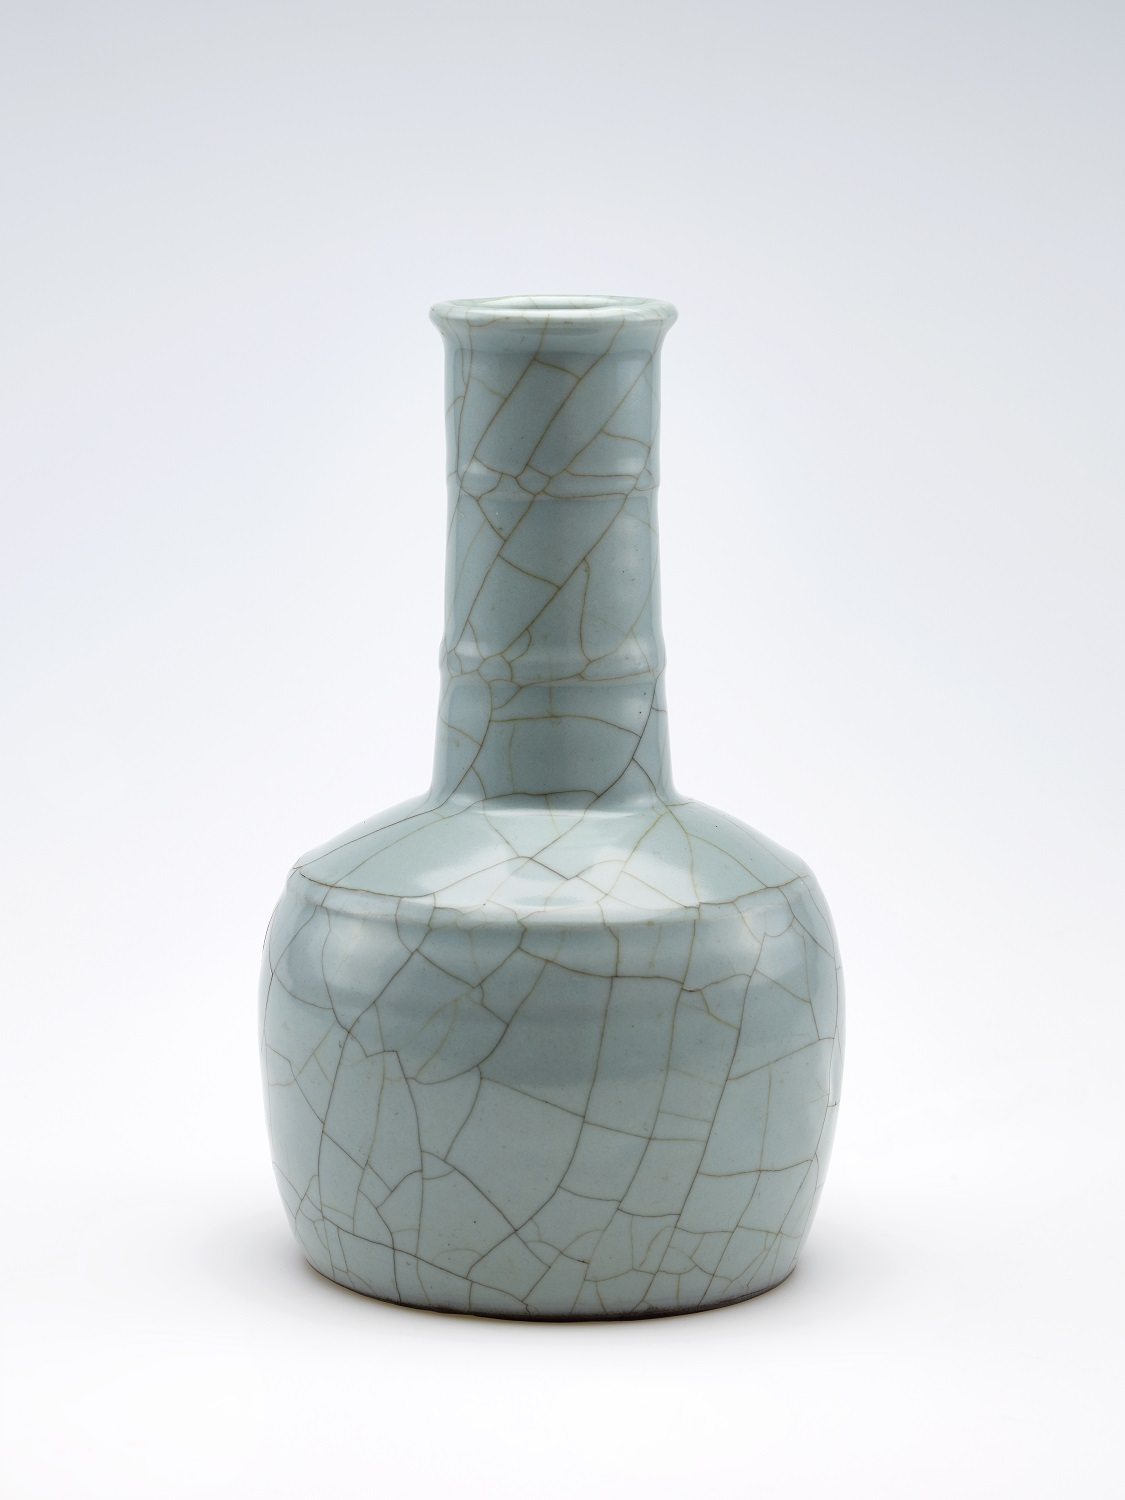 tall ceramic green vessel with a long neck